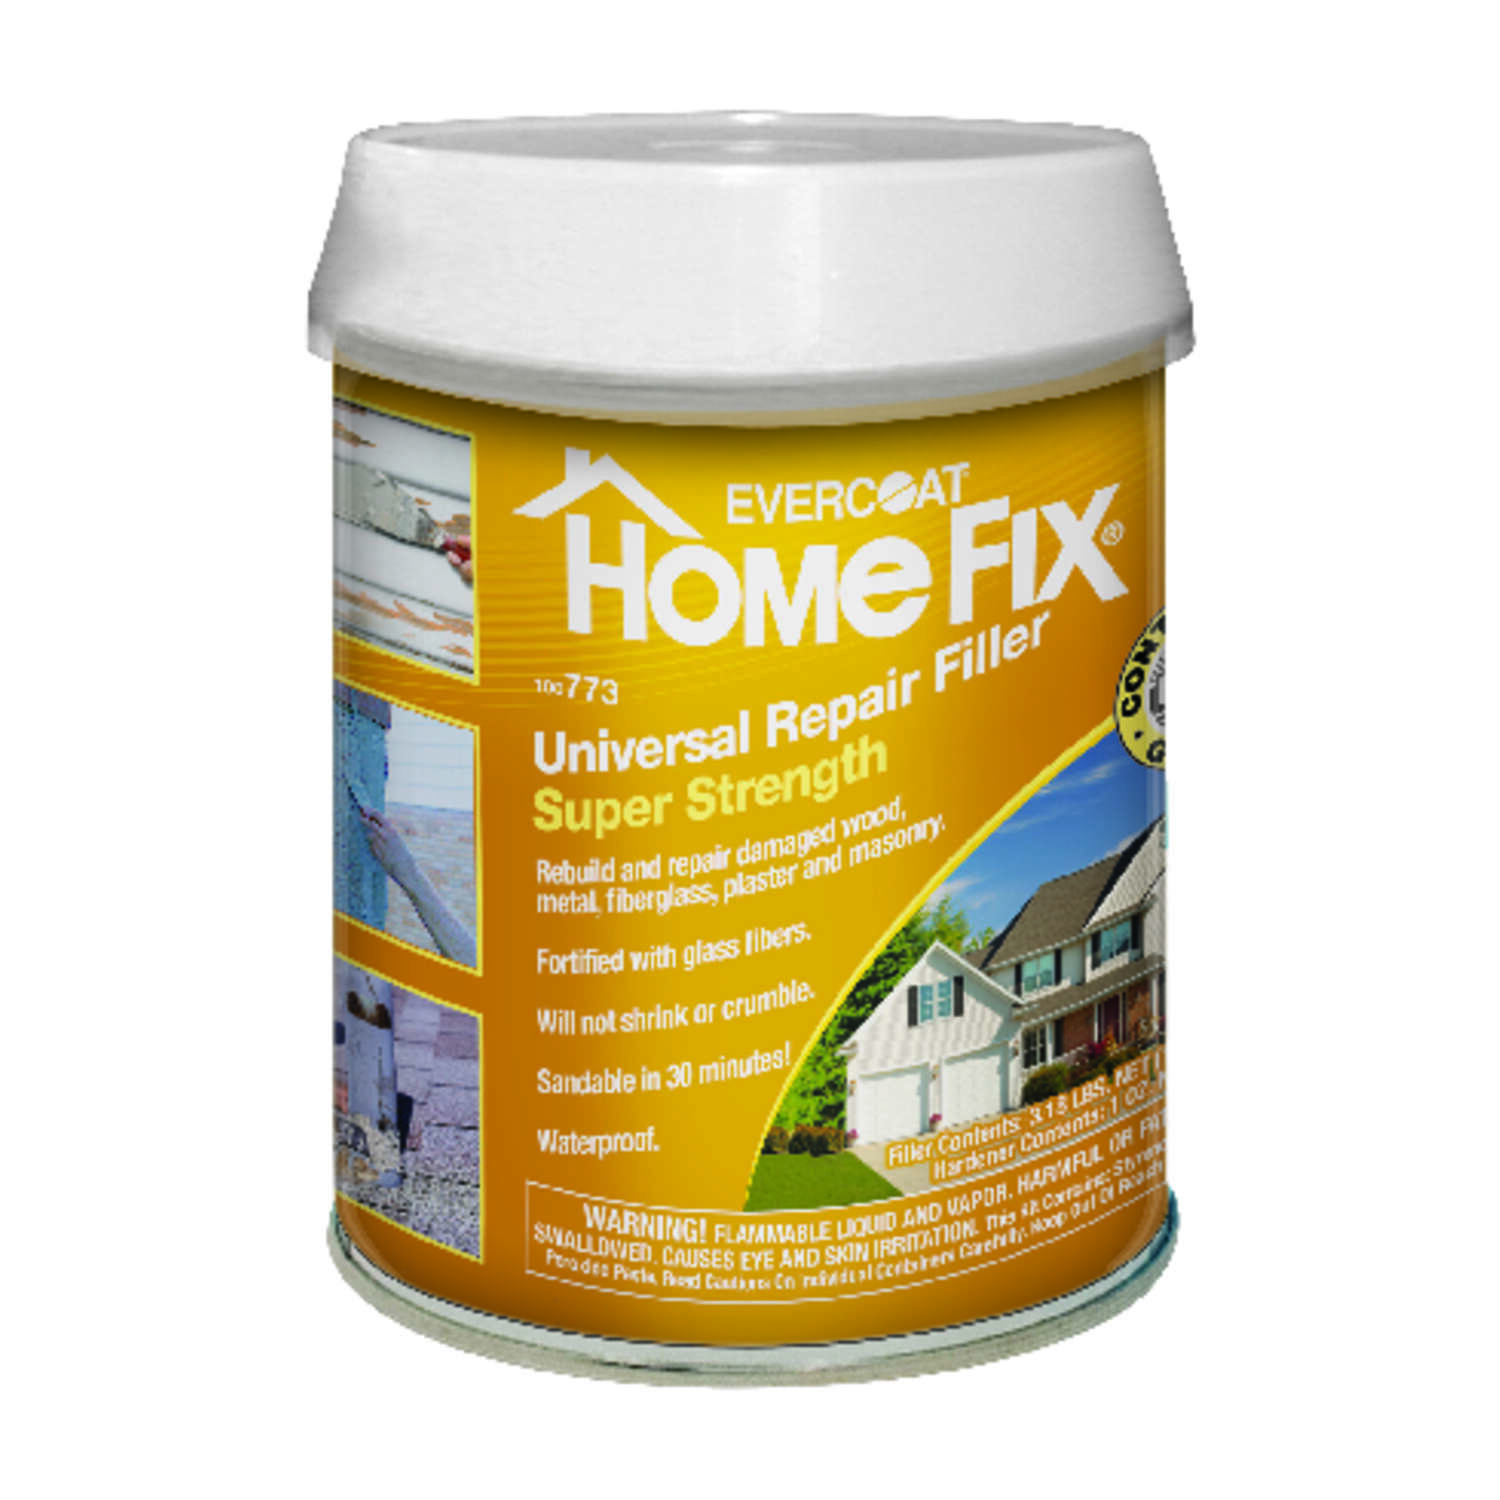 Evercoat  Home Fix  Brown  Universal Repair Filler  1 qt.